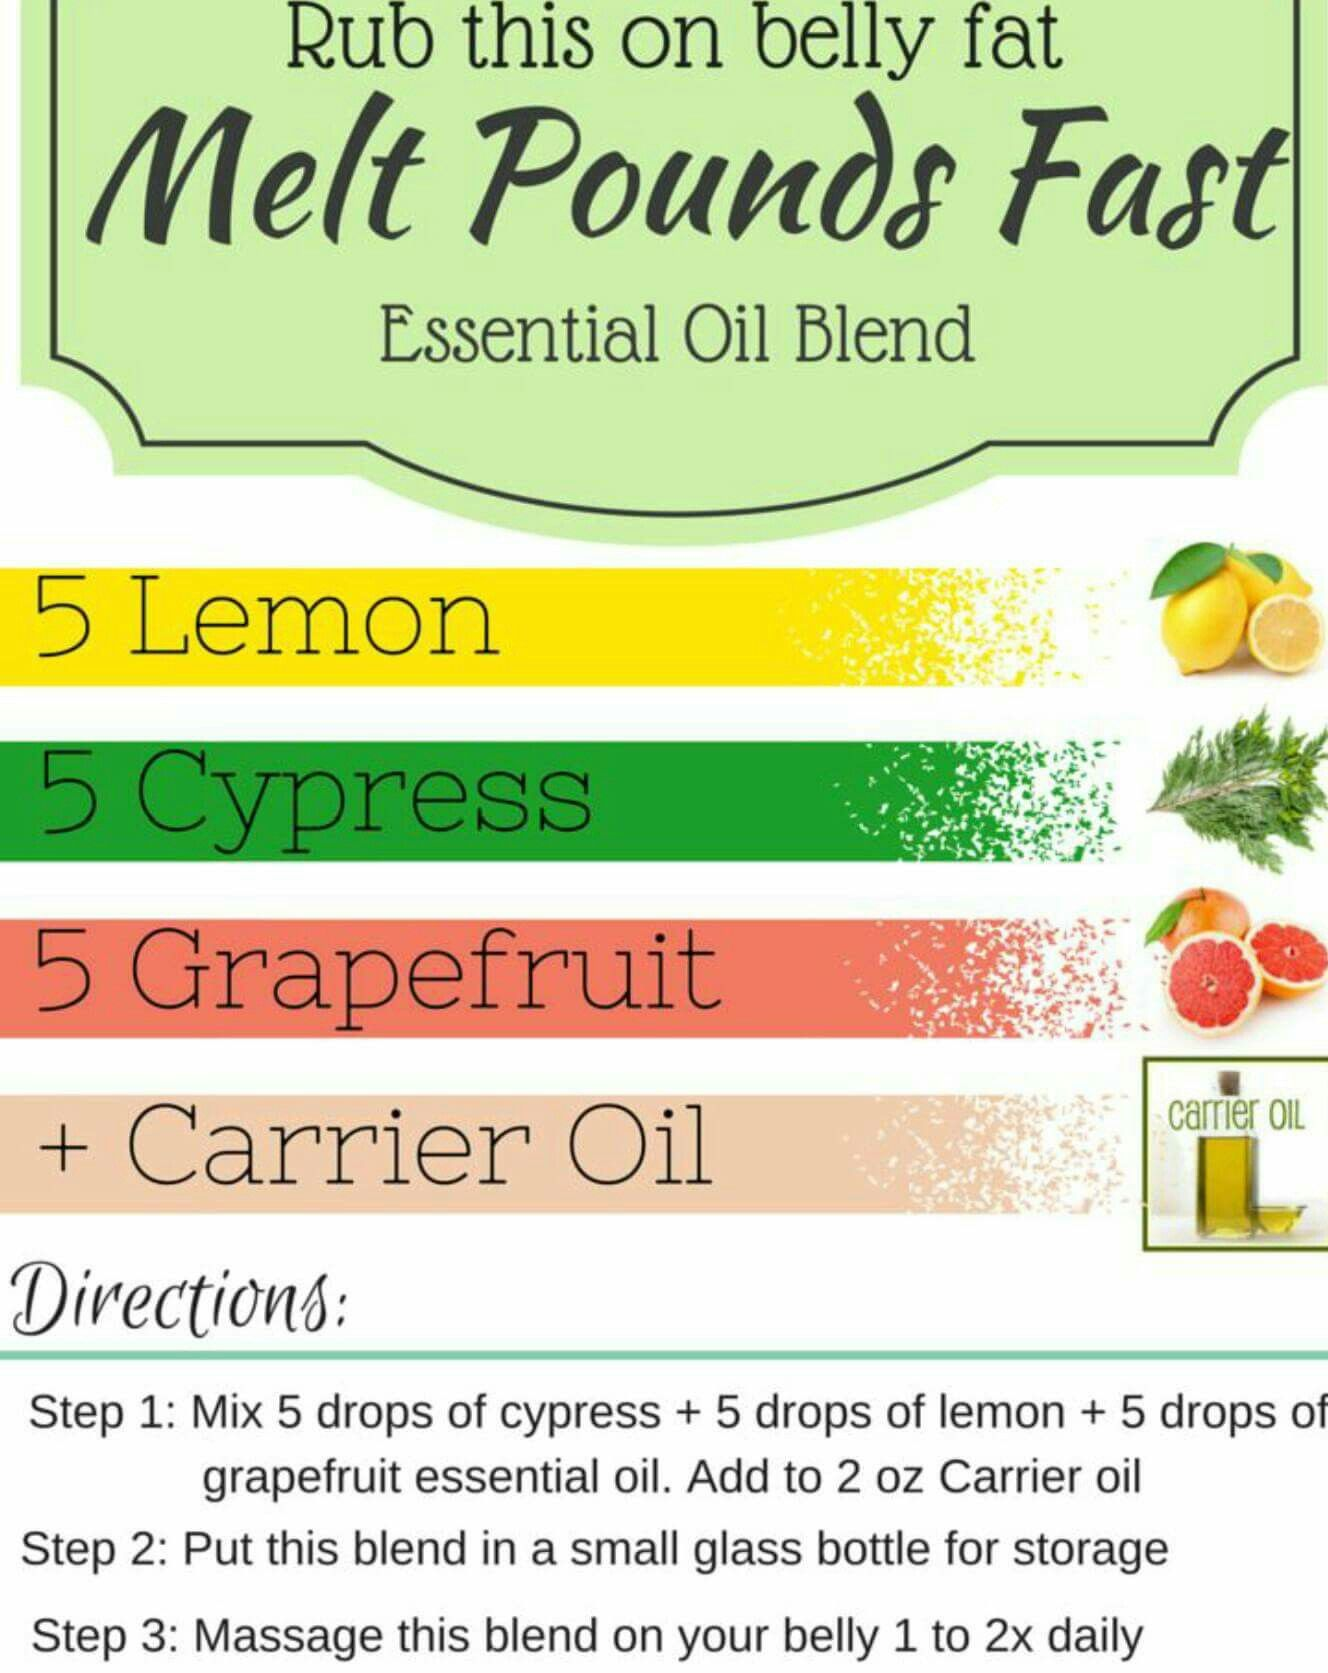 Best weight loss tips for men photo 5